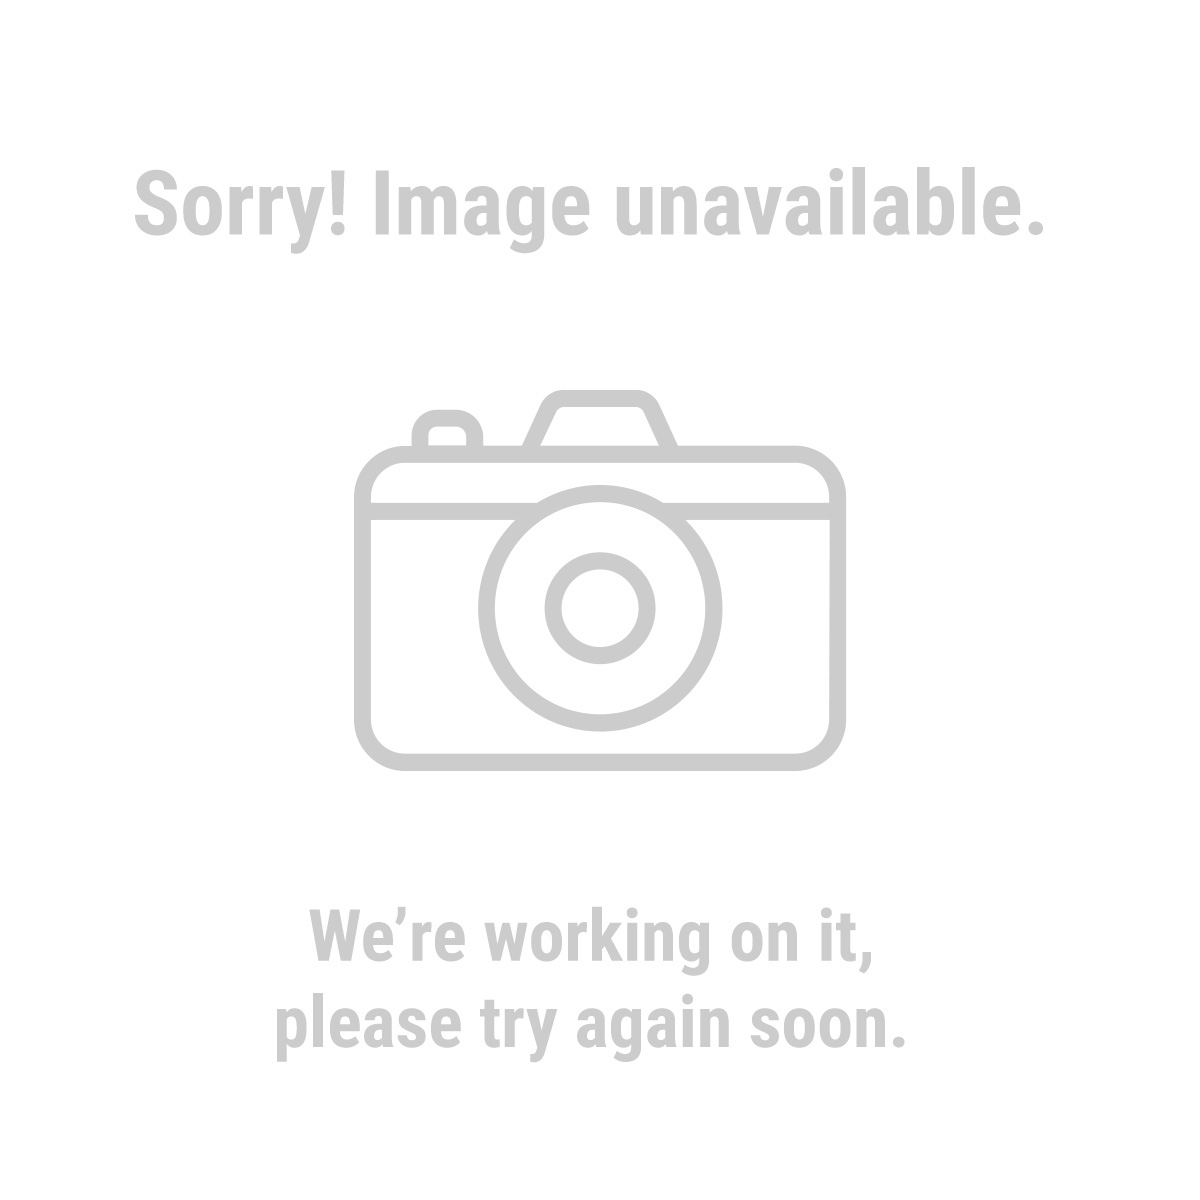 Western Safety 61534 UV Safety Glasses with Grey Lenses